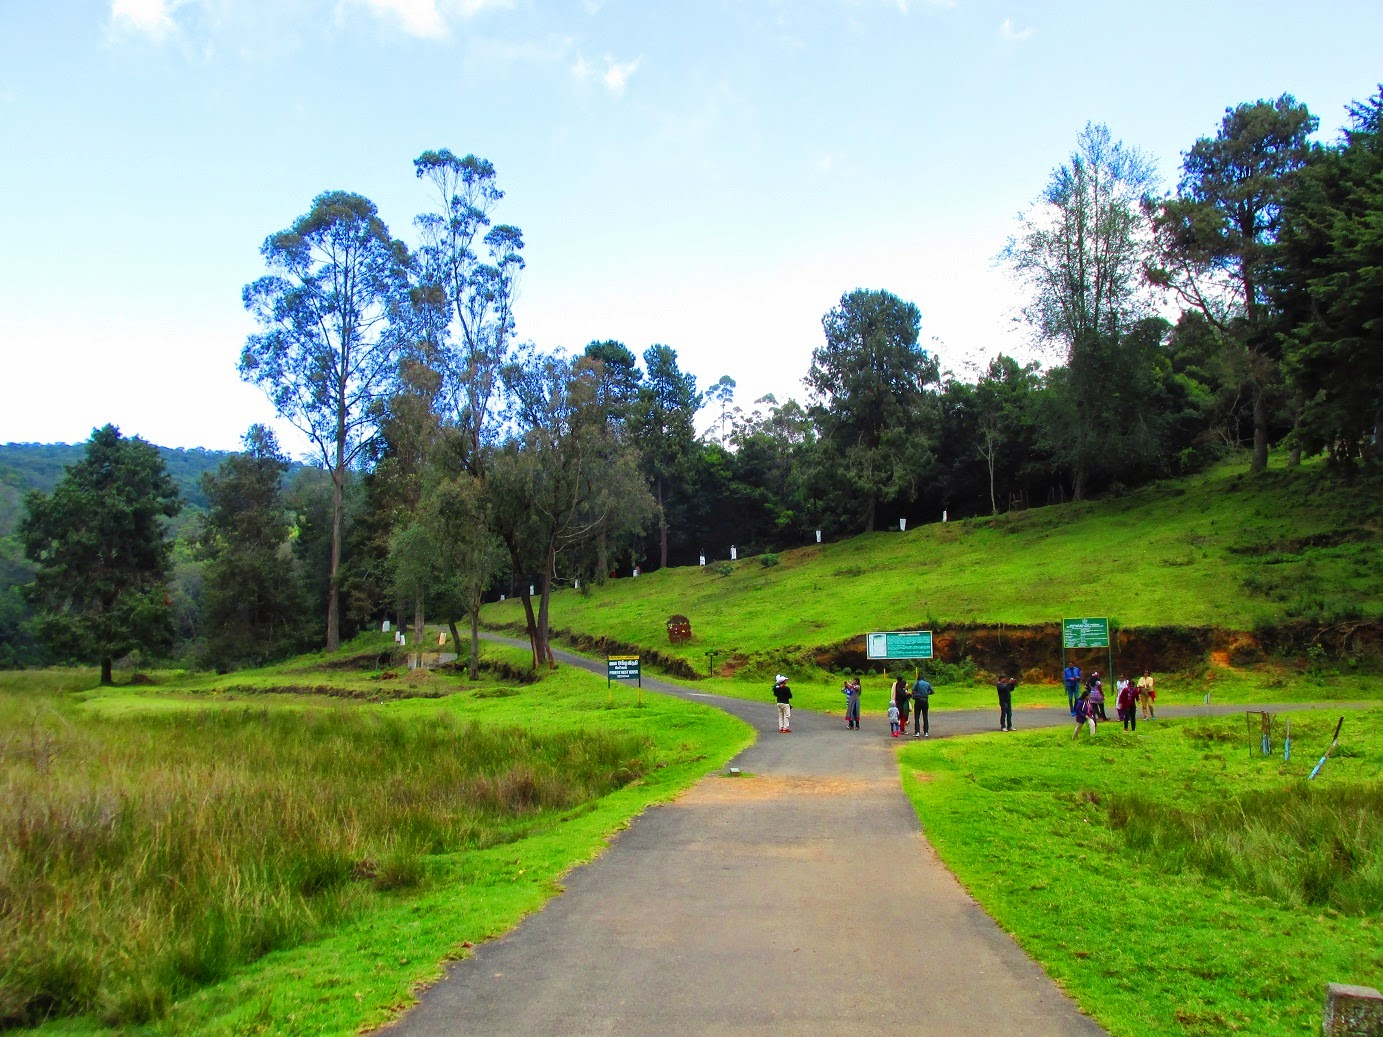 Kodaikanal India  city pictures gallery : Kodaikanal is one of the most important hill stations in India. People ...